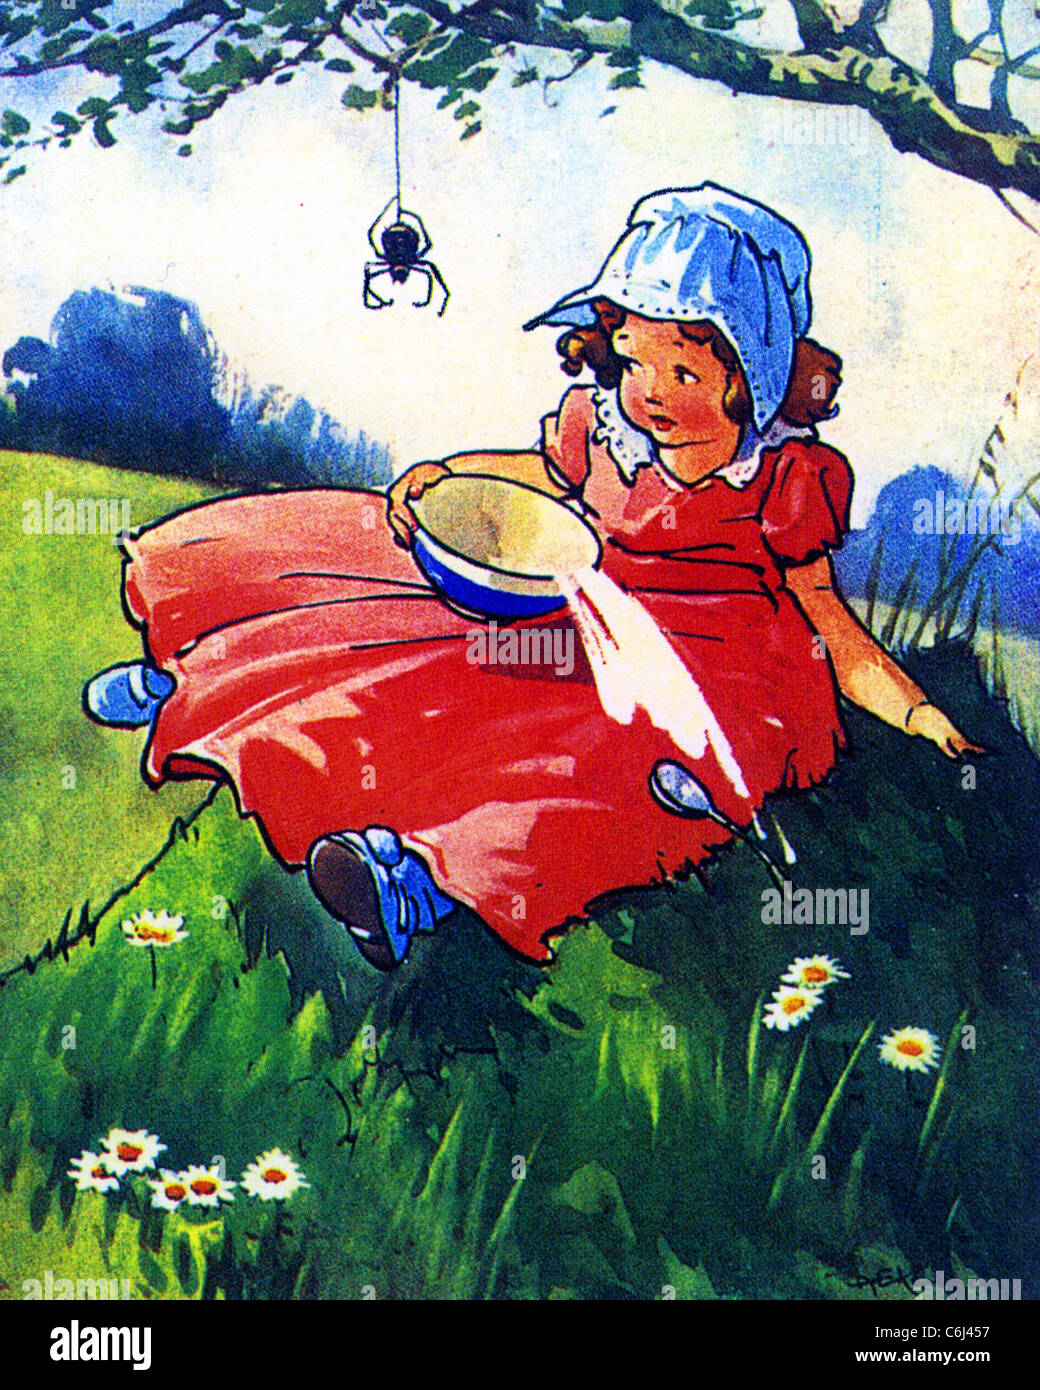 LITTLE MISS MUFFET nursery rhyme - Stock Image